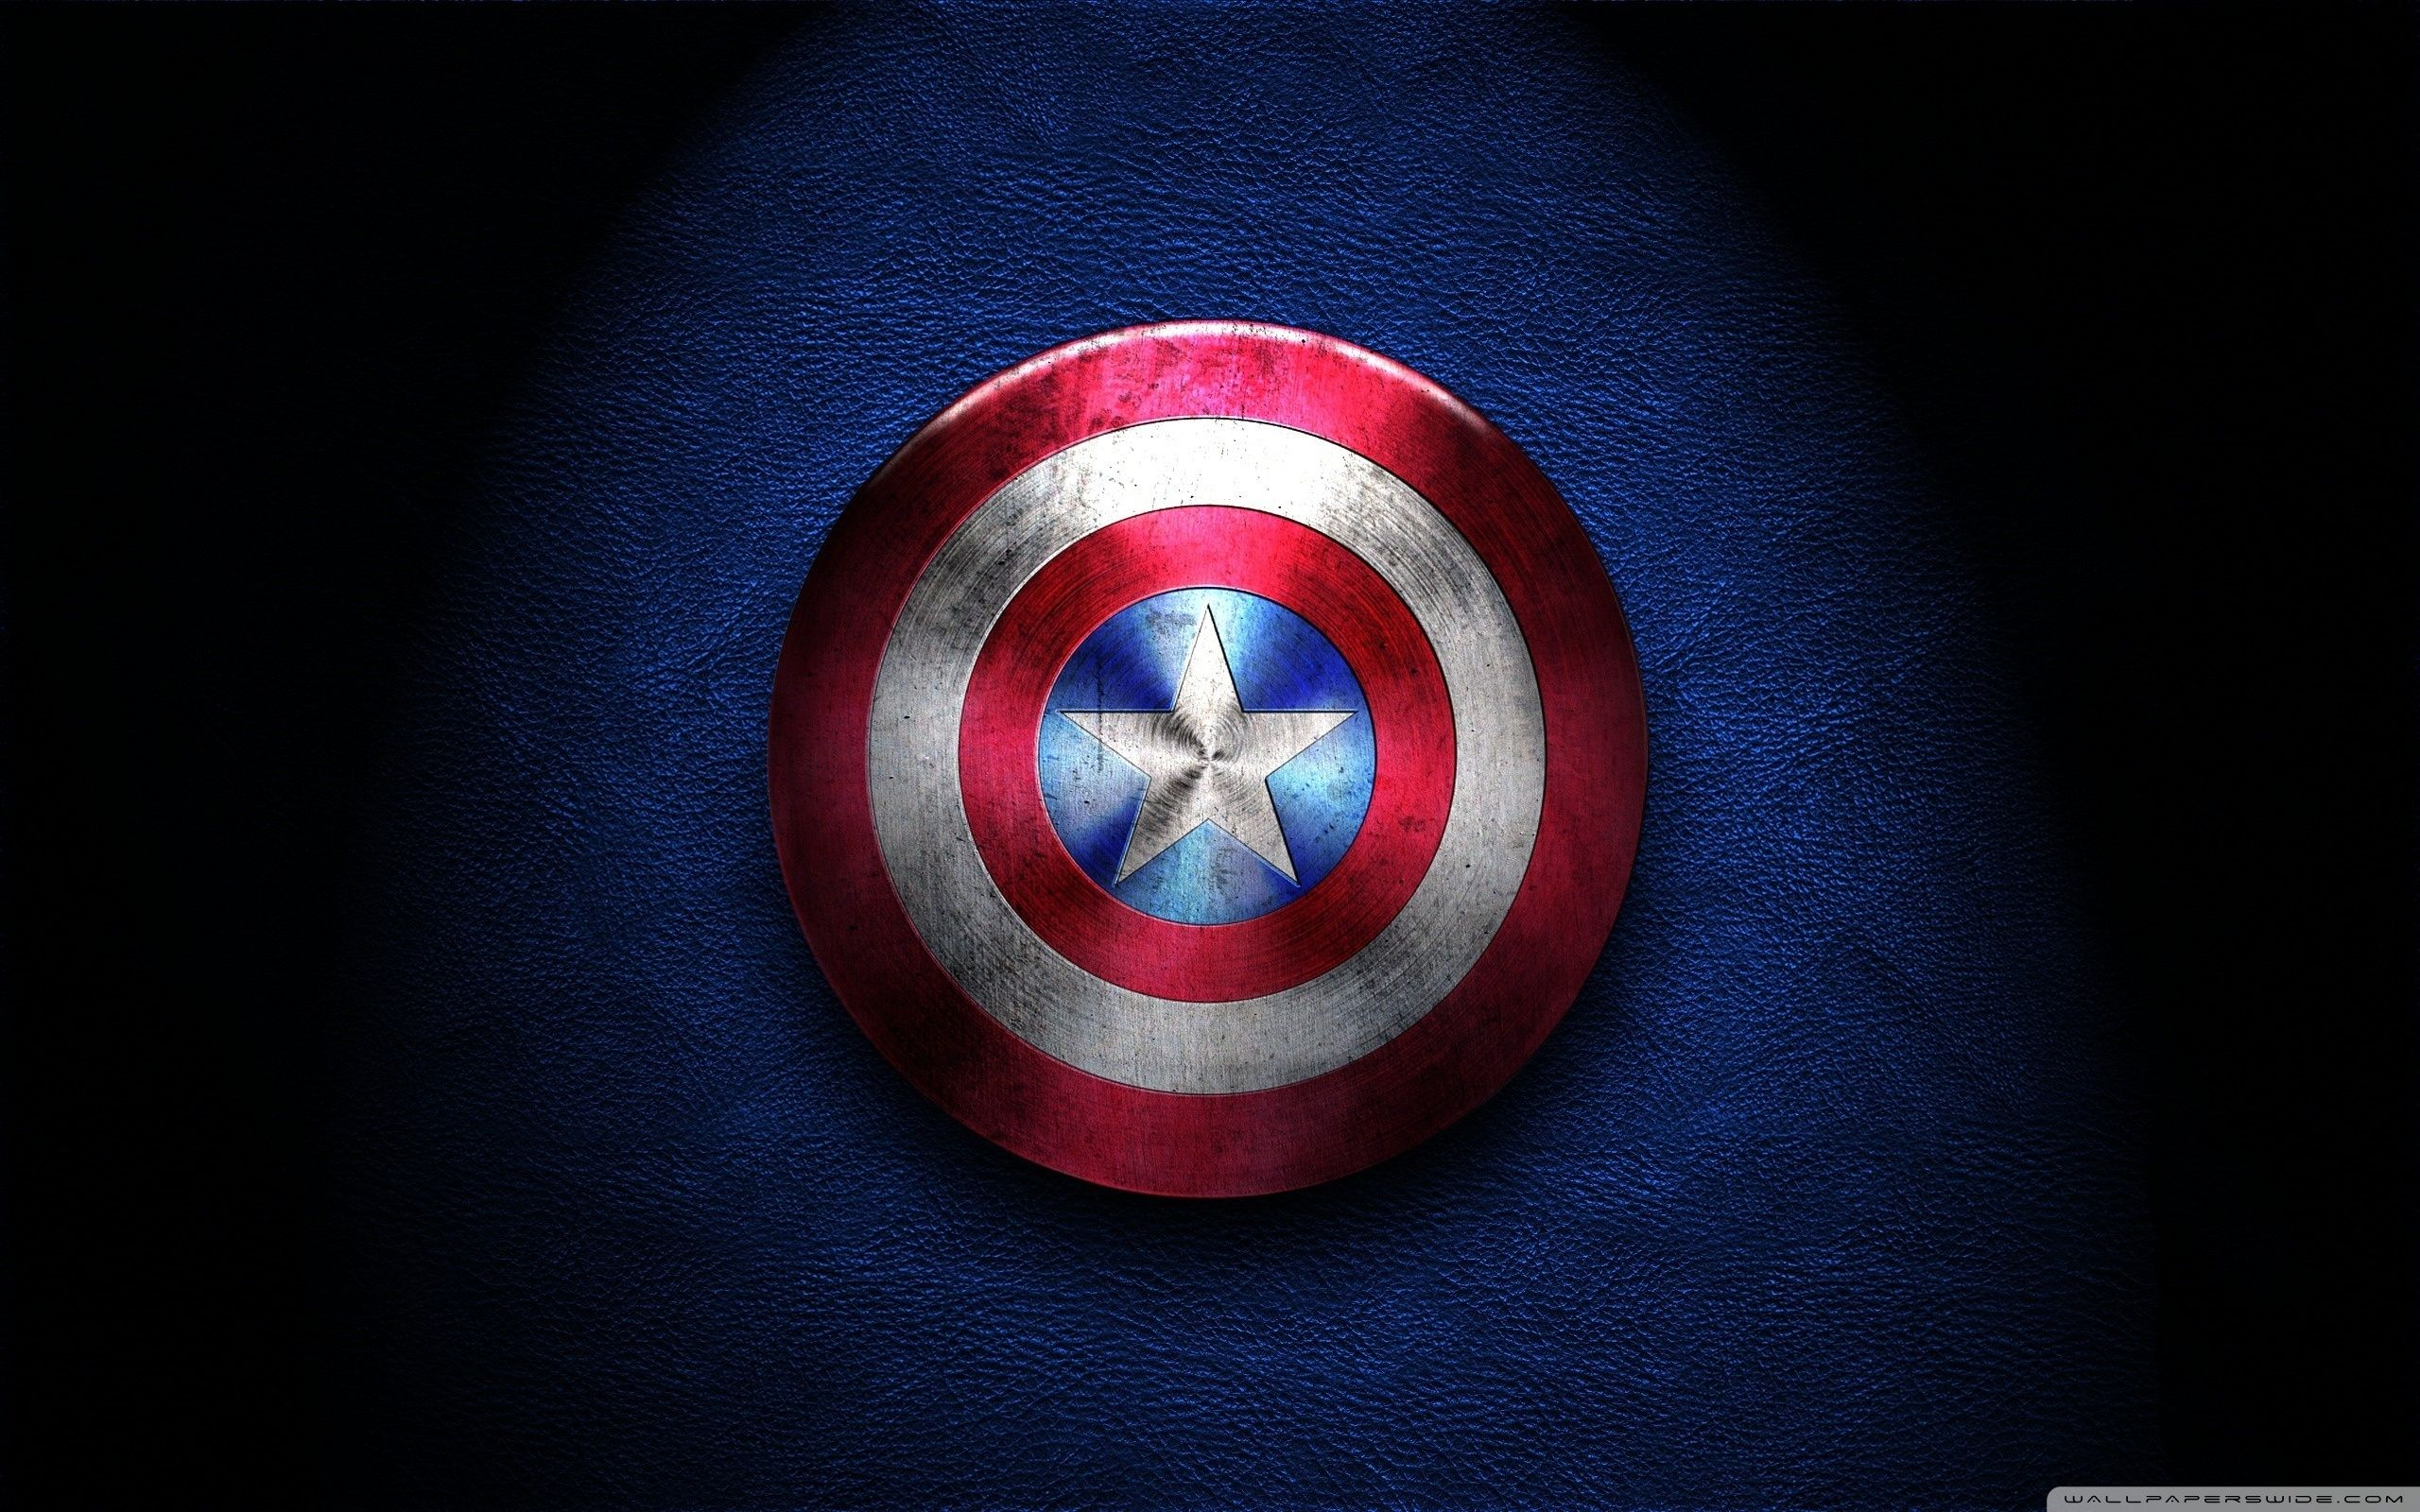 10 Latest Captain America Desktop Backgrounds Full Hd 1920 1080 For Pc Backgr Captain America Wallpaper Captain America Shield Wallpaper Captain America Shield